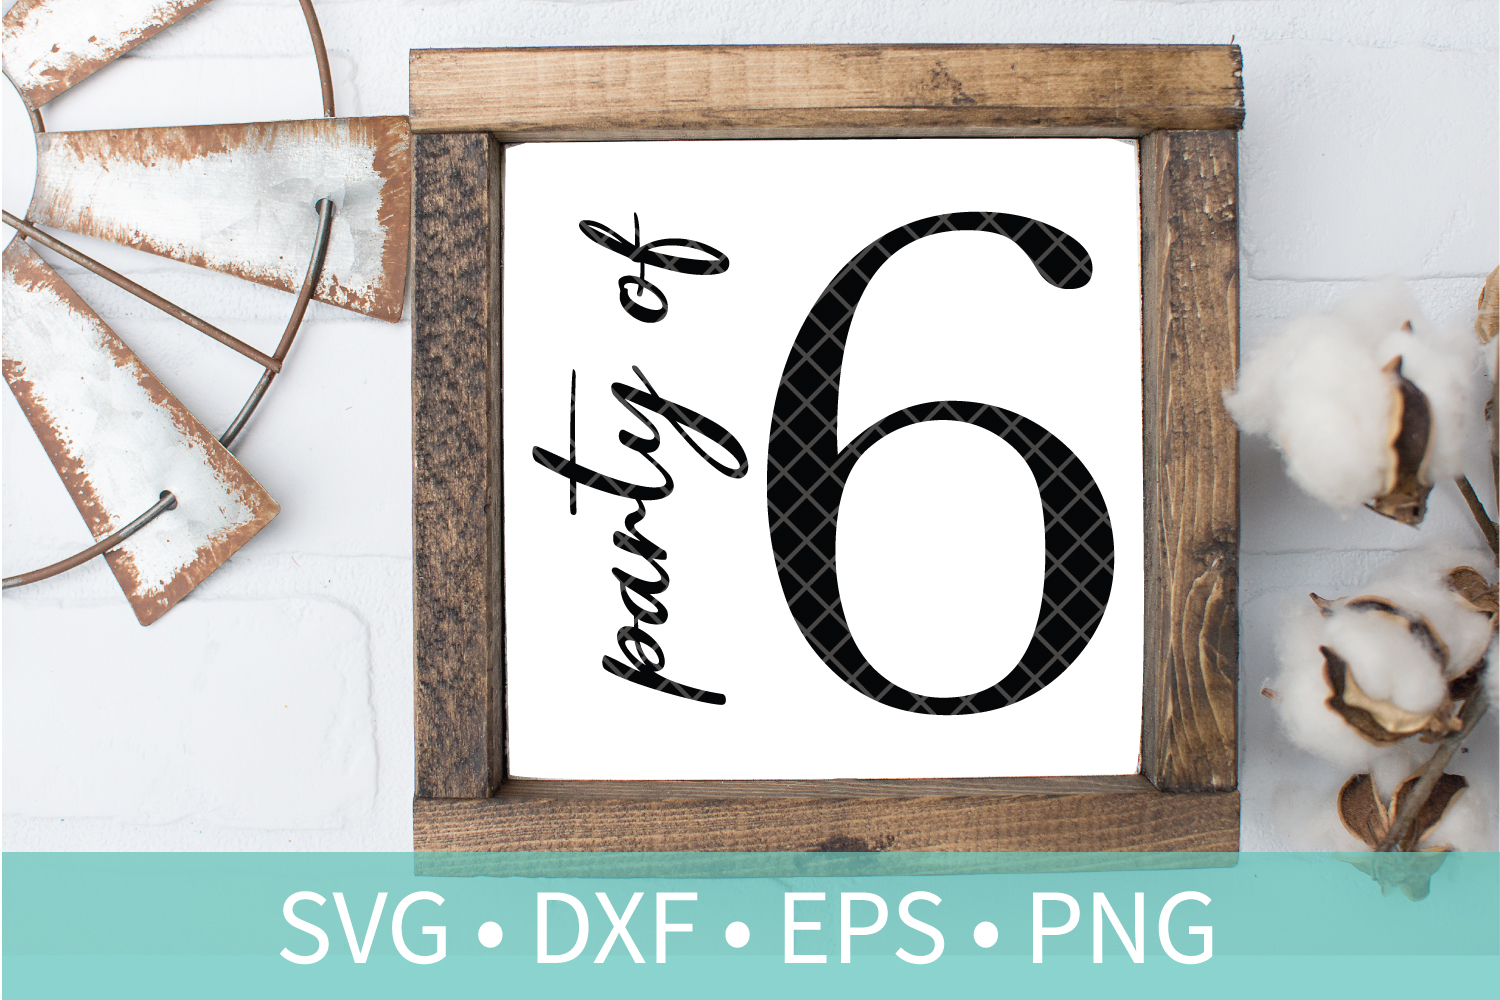 Party of 6 Family Sign SVG DXF EPS PNG Clipart Cut File example image 1